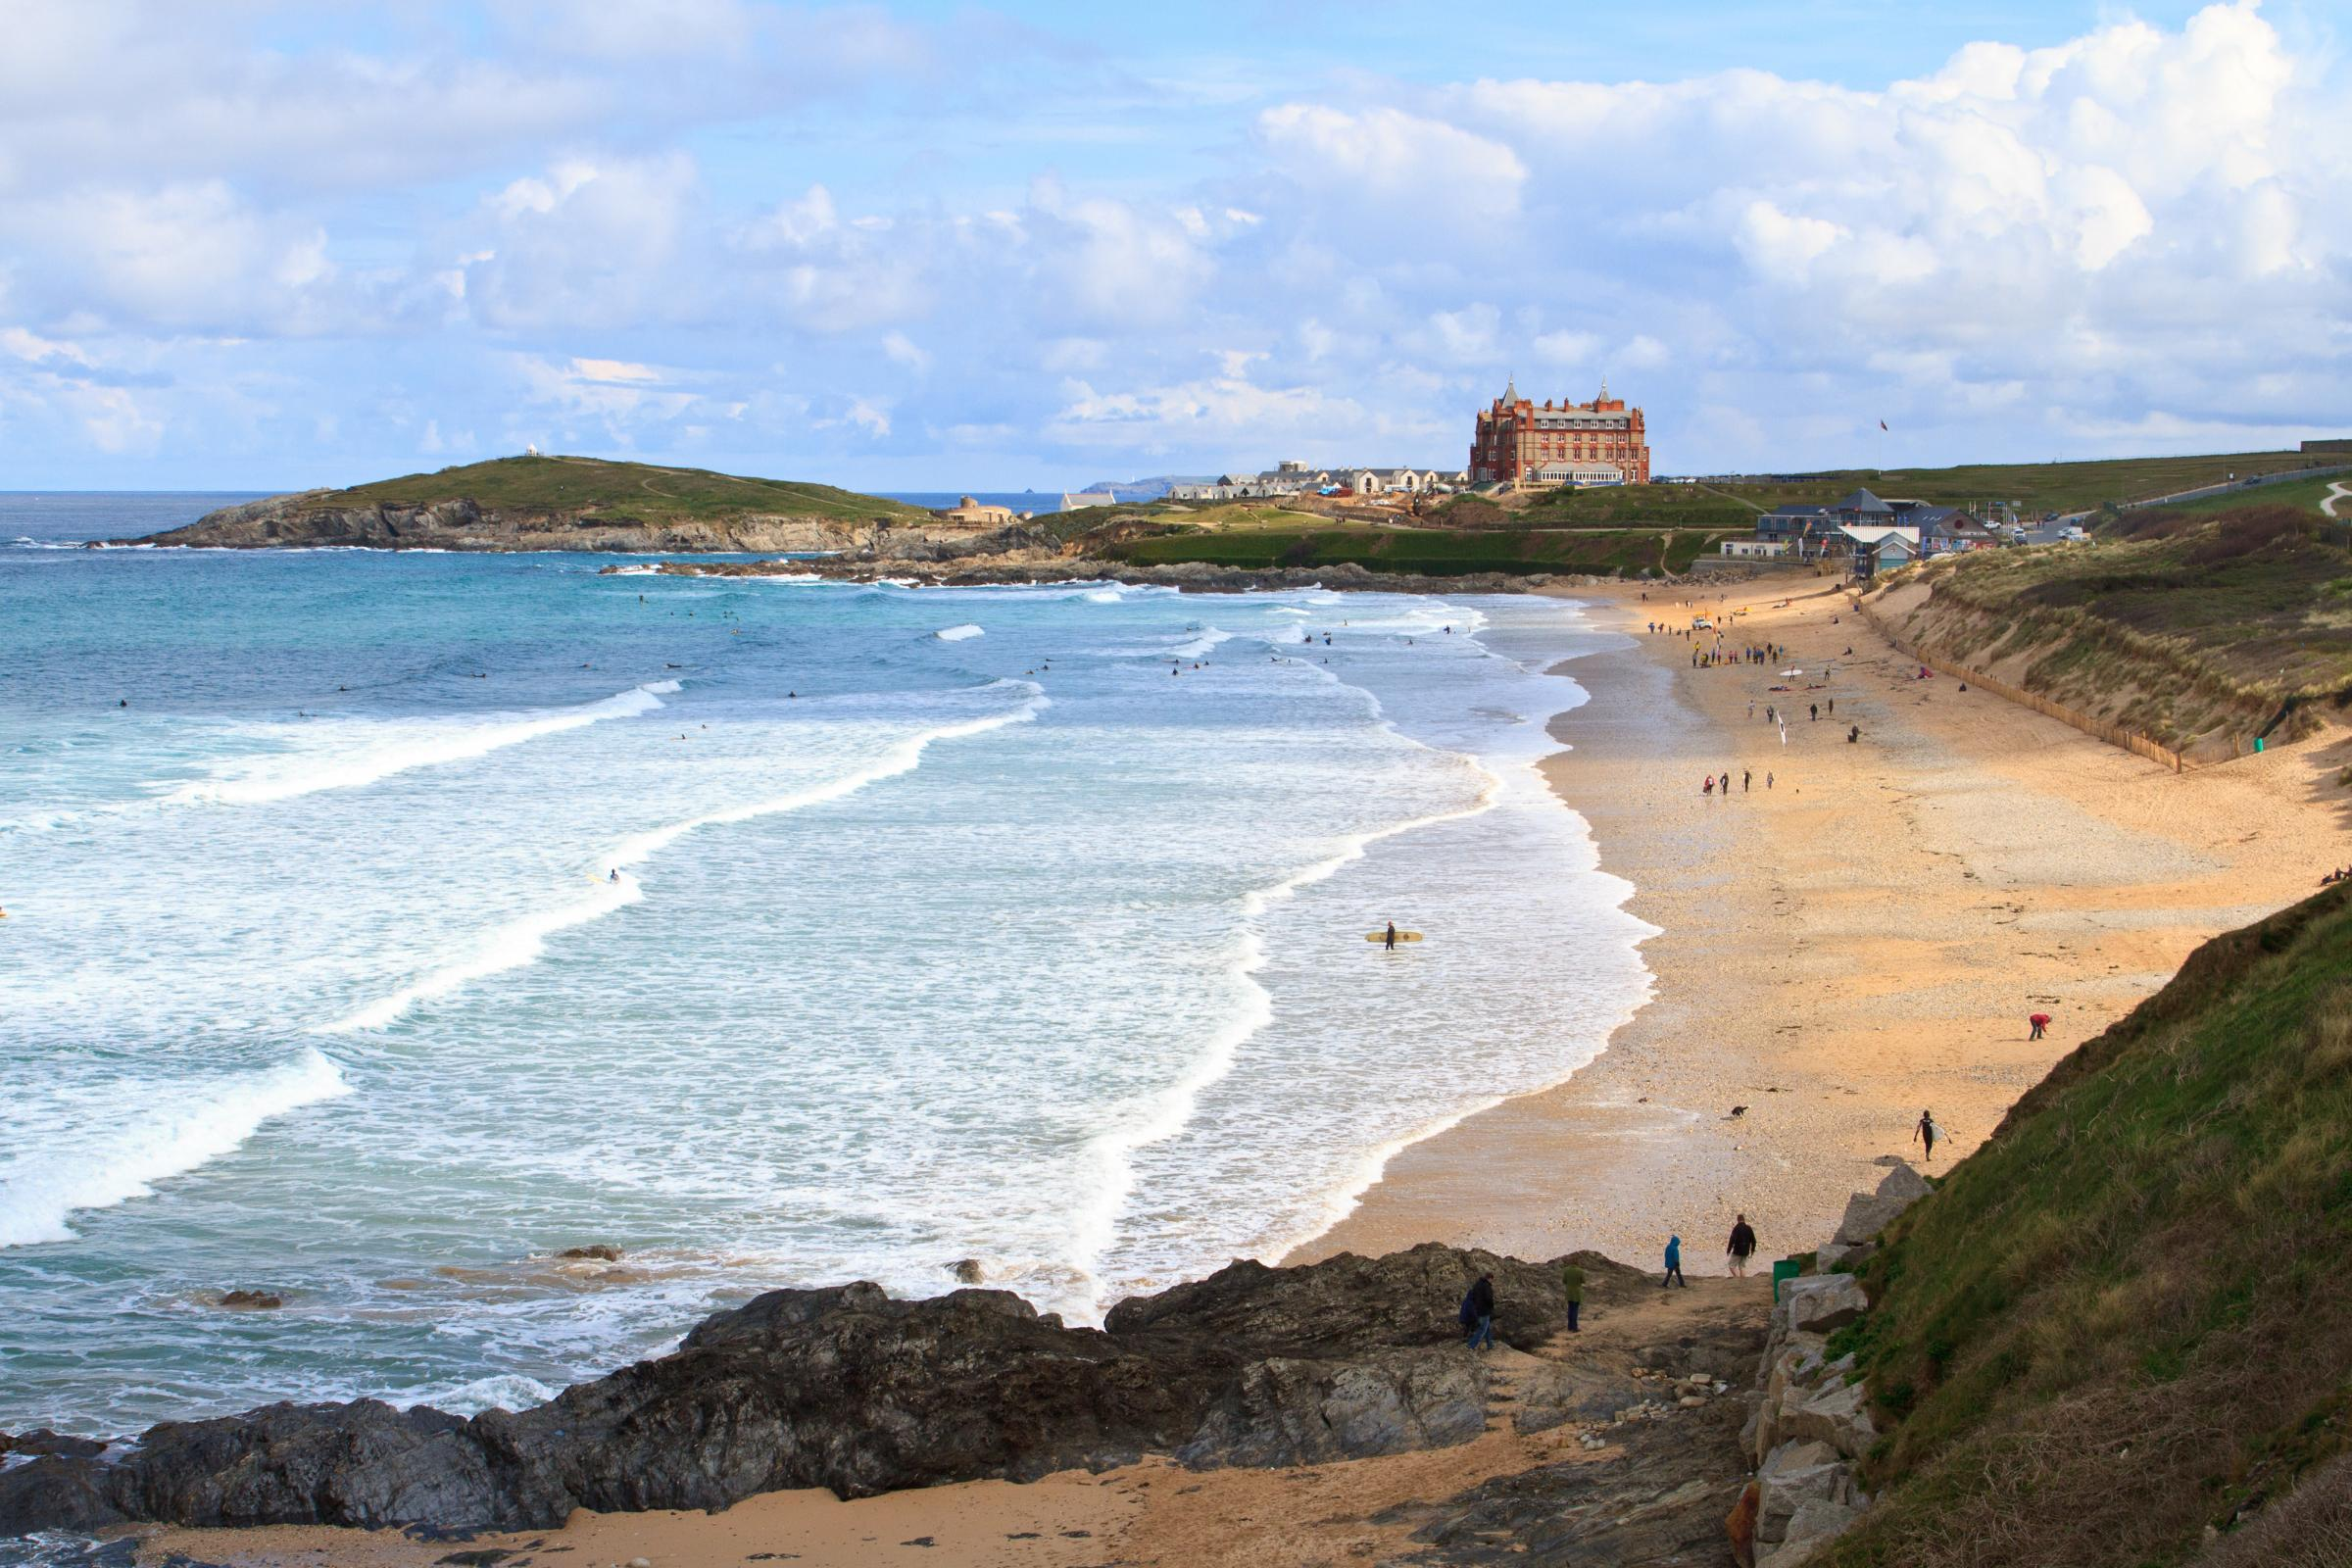 Travel: Surf, sand and giant burgers on a family holiday in Newquay